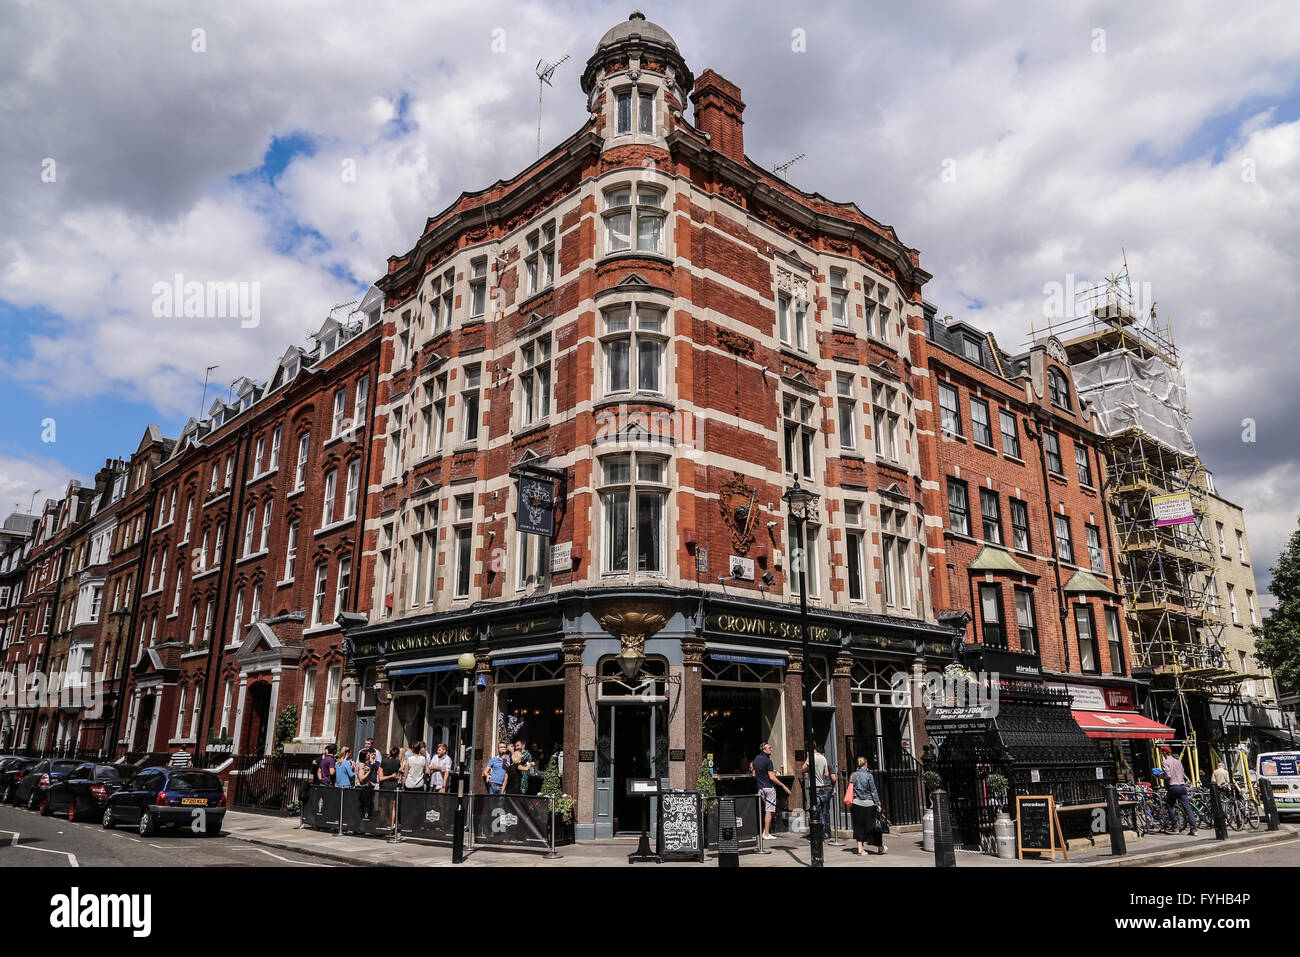 A corner in Fitzrovia with residential houses and The Clachan Pub. Stock Photo